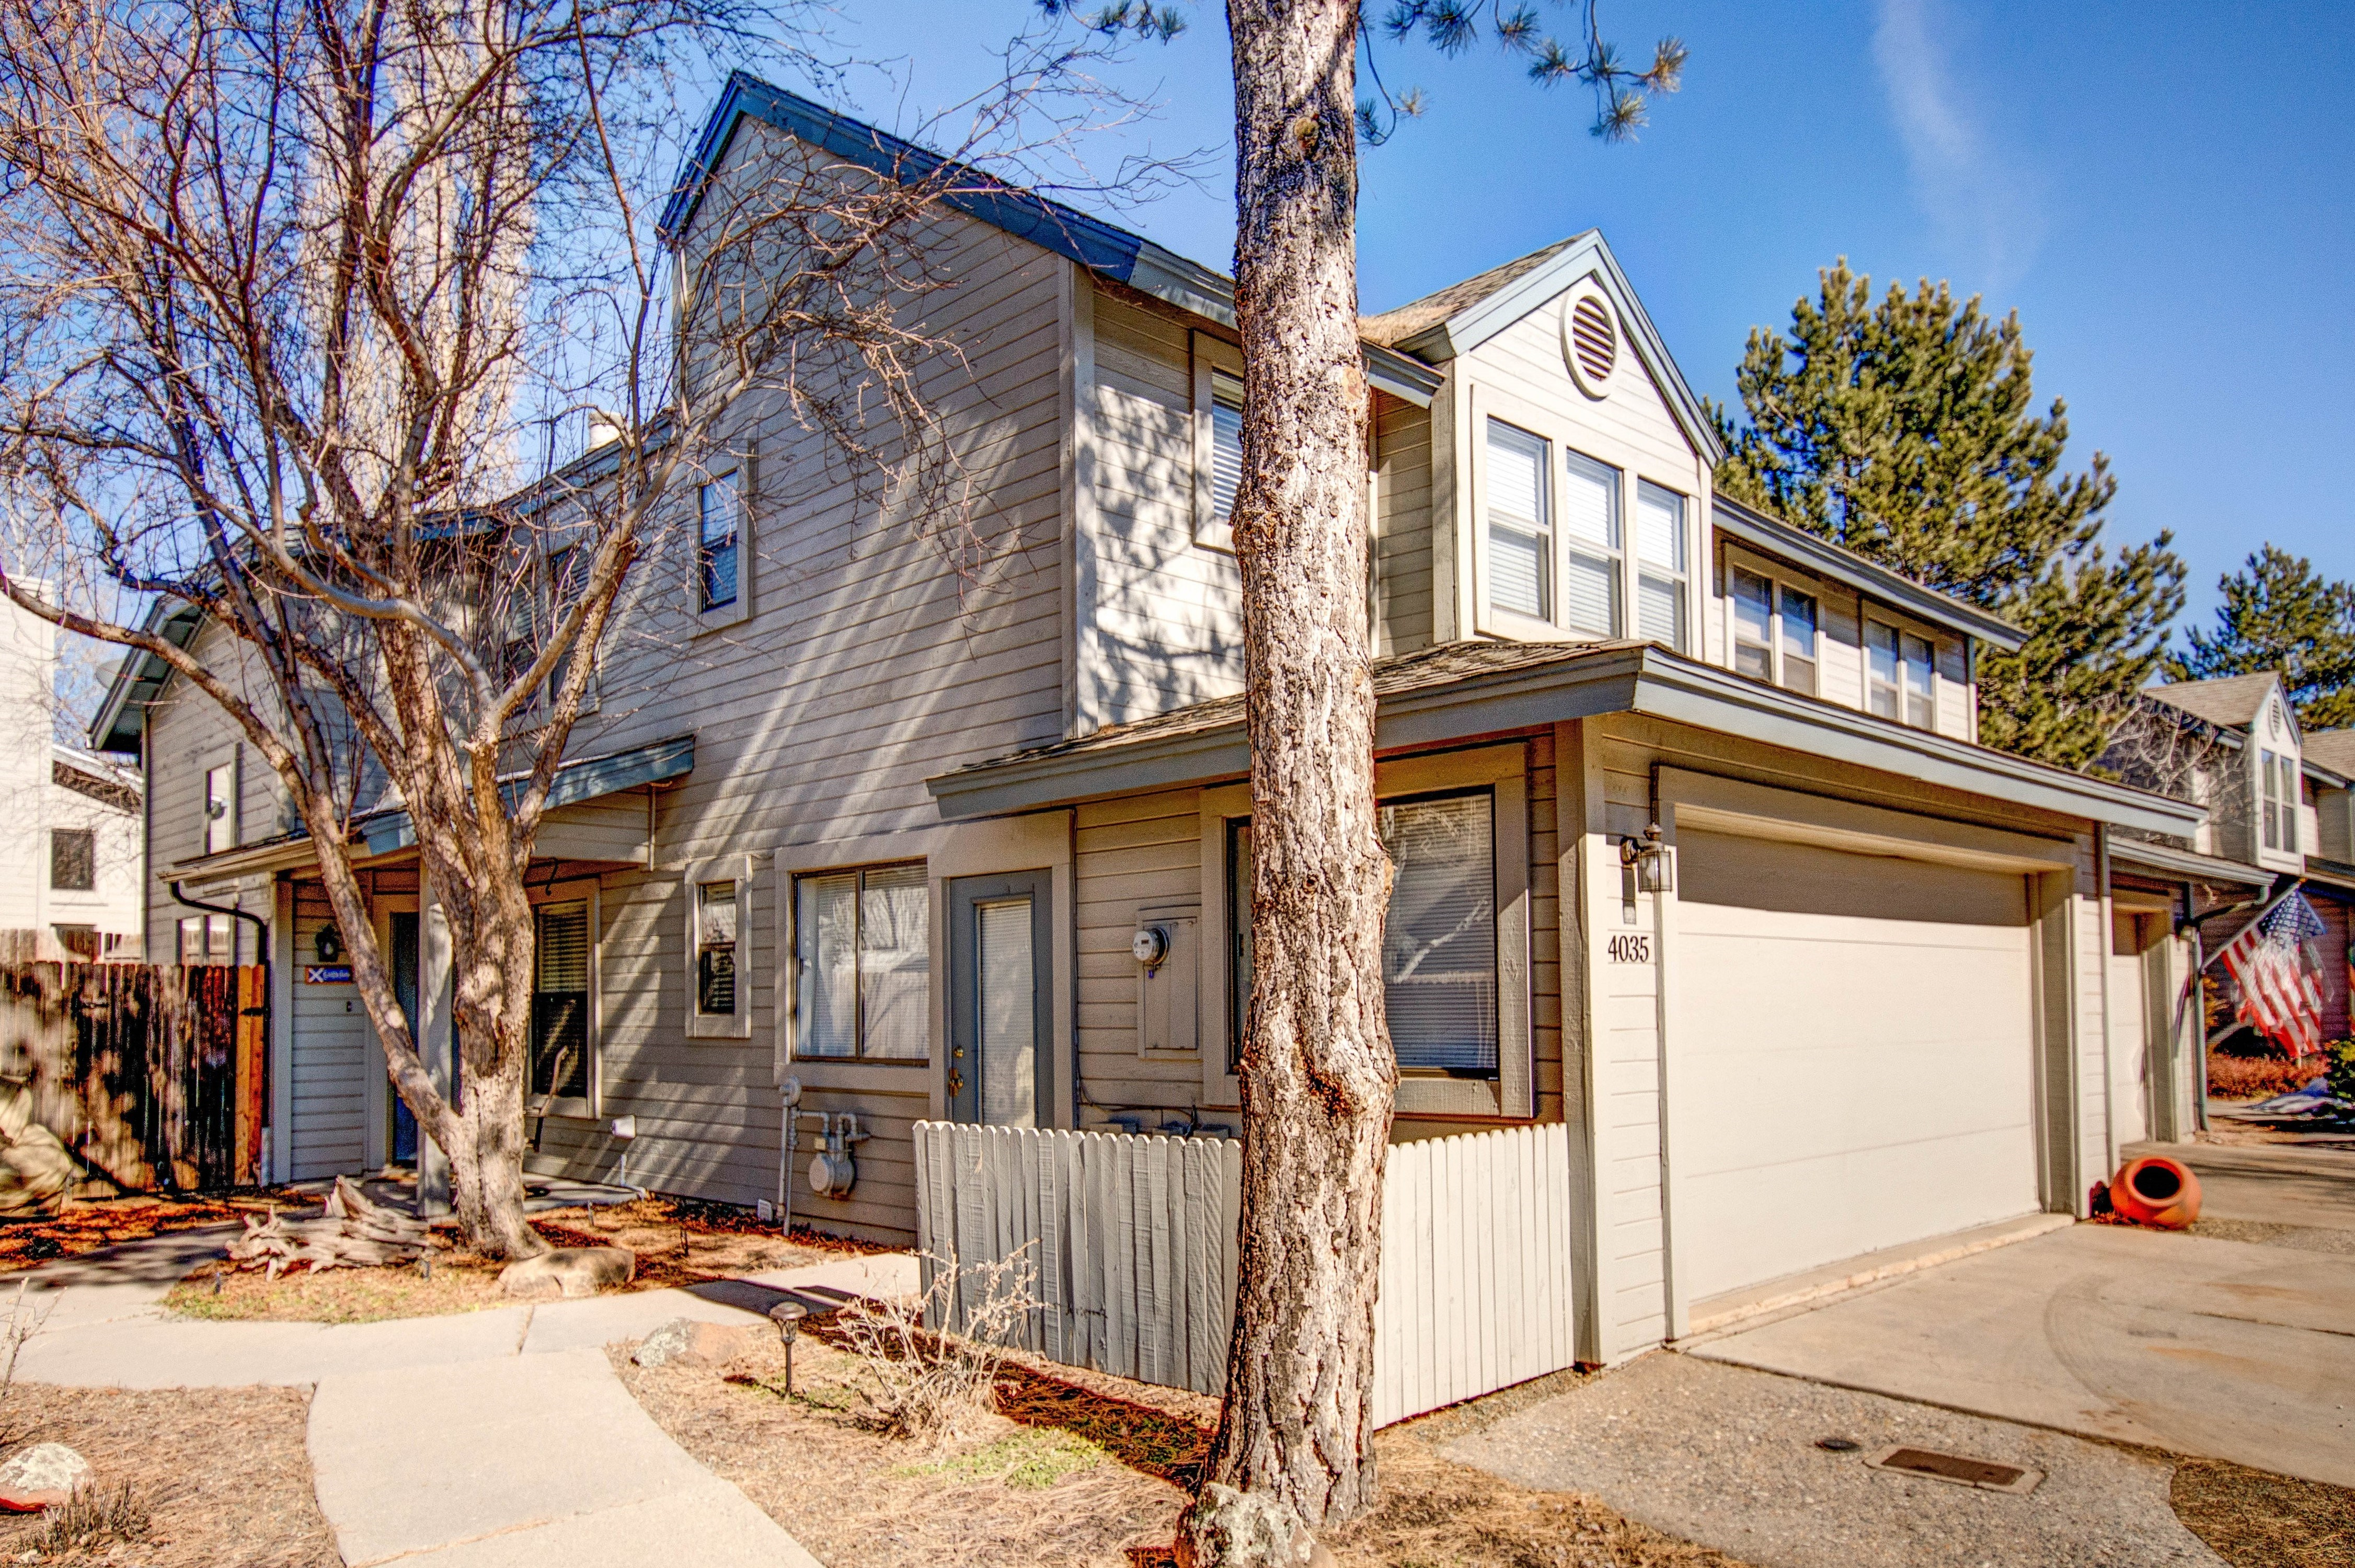 4035 Spring Meadow